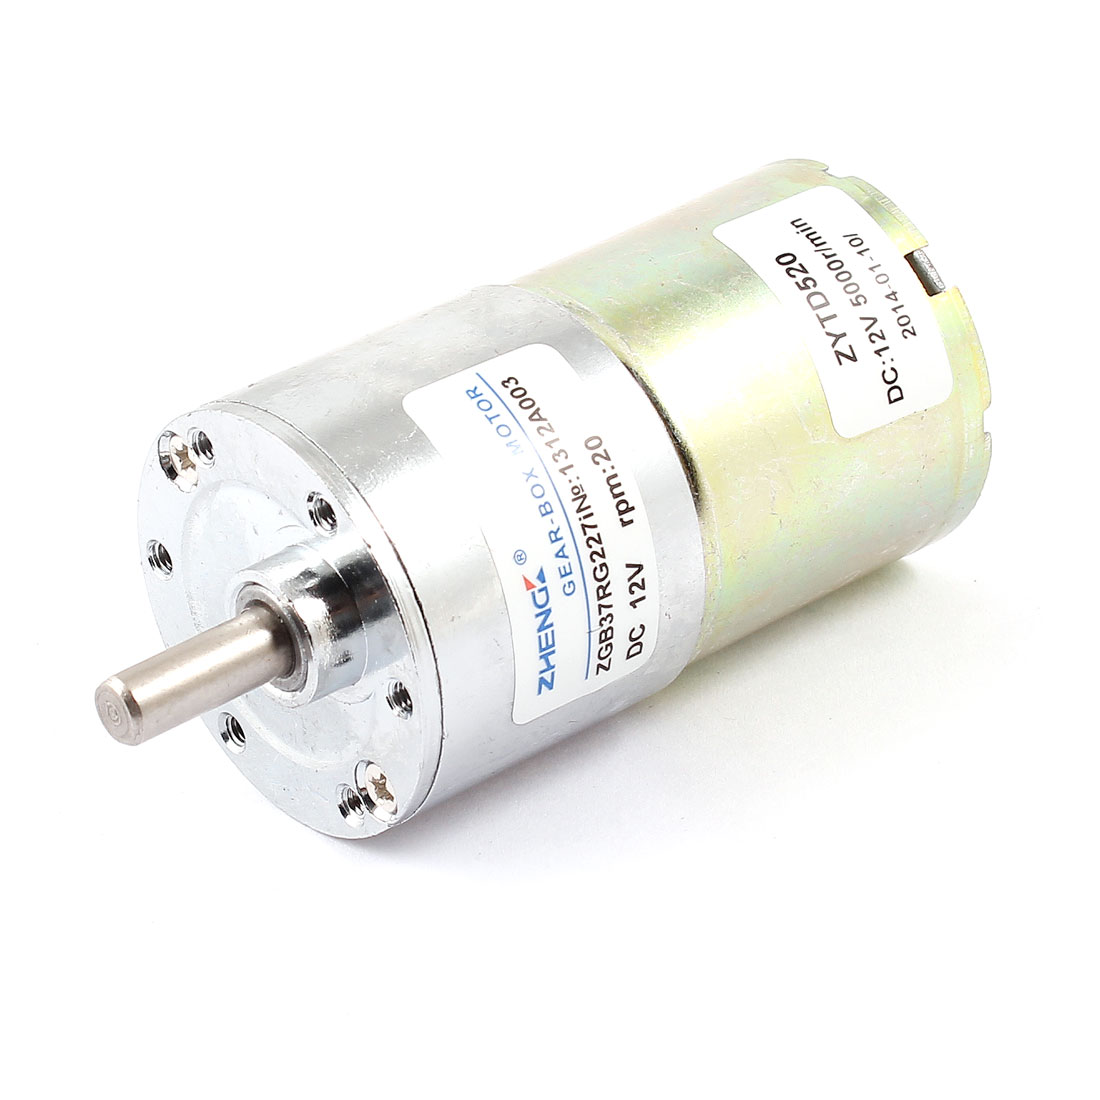 Shaft Diameter 6mm x 15mm DC 12V 20 RPM Speed 6mm Dia Shaft Magnetic Gearbox Electric Geared Motor 37mm x 86mm подвесная люстра 890040 lightstar